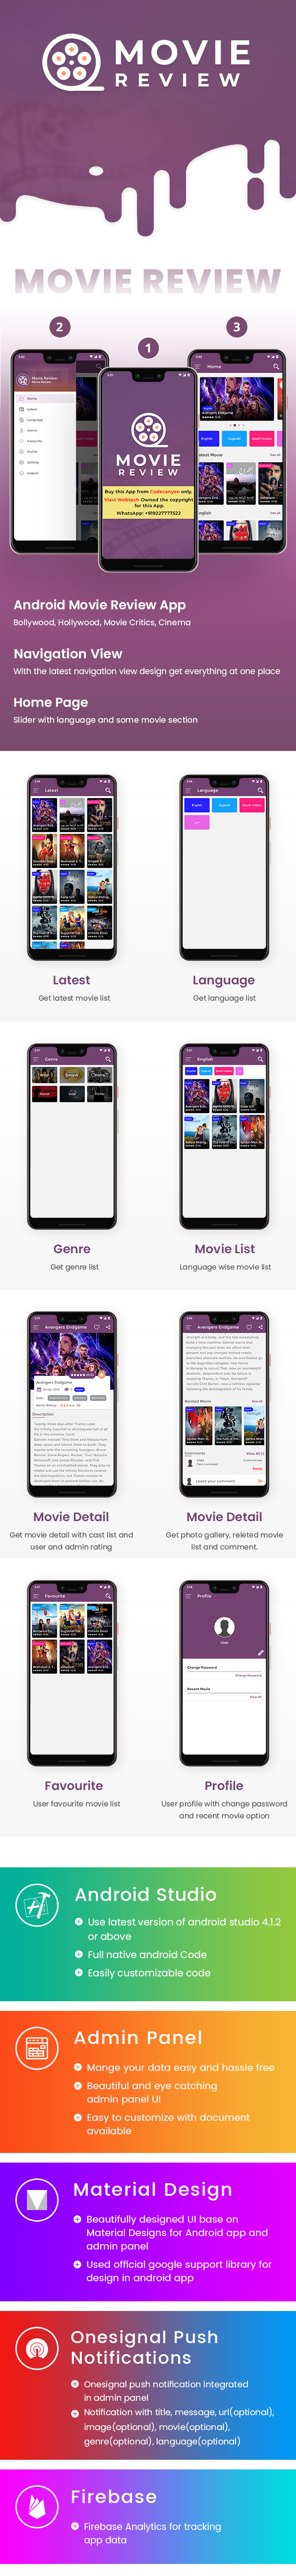 Android Movie Review App (Bollywood, Hollywood, Movie Critics, Cinema) - 7